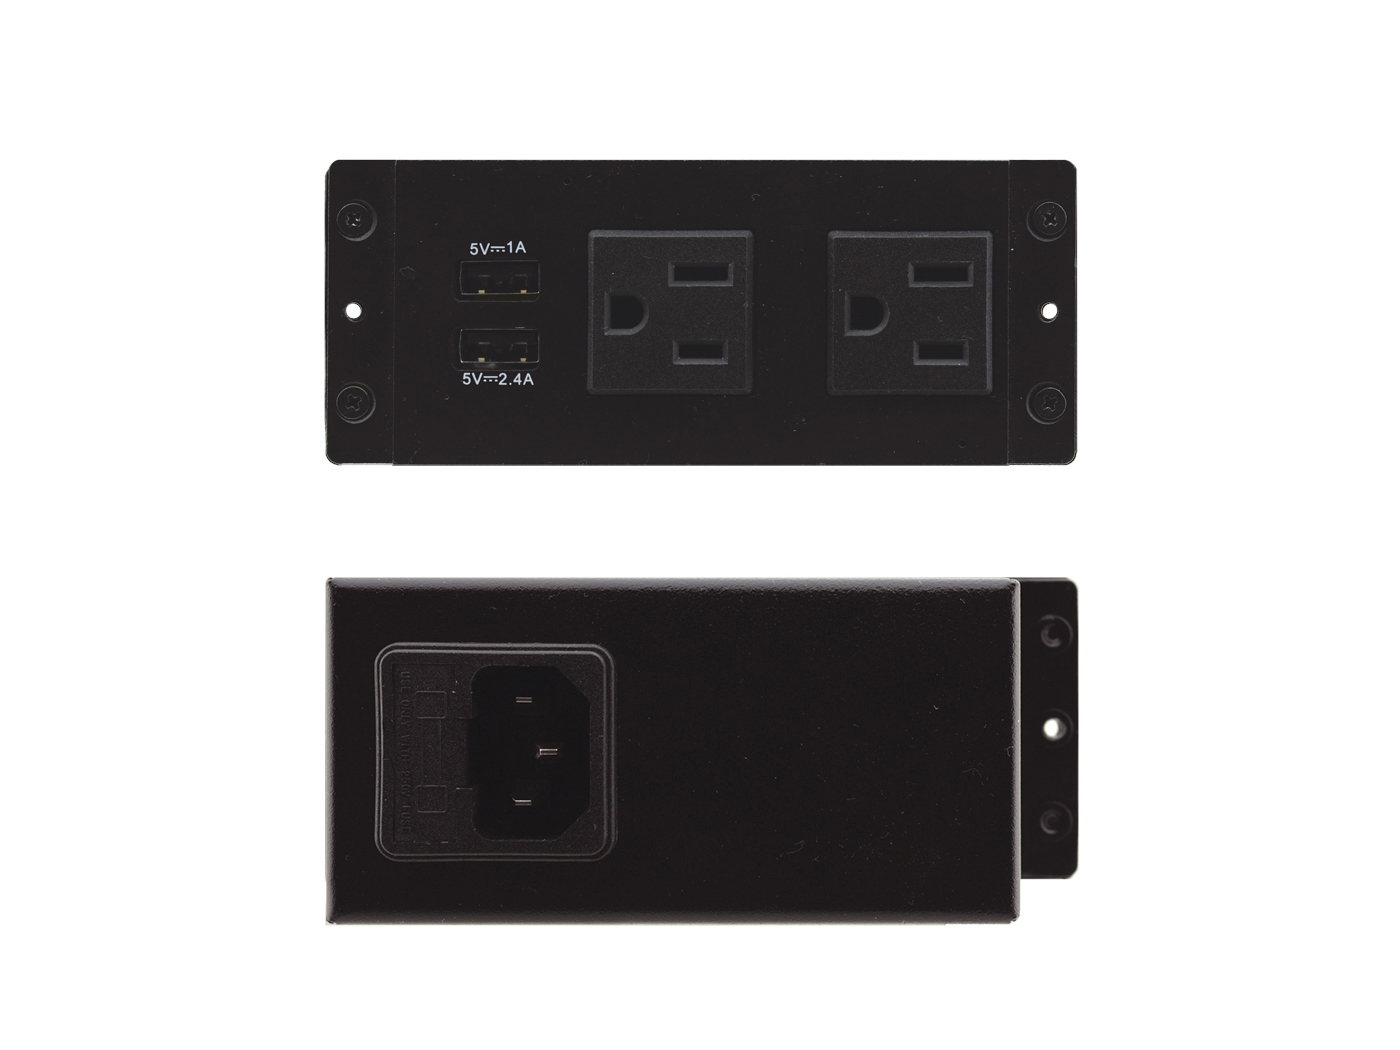 Kramer TS-2UC TBUS Dual socket module with 2 US AC power sockets and 2 USB charging ports